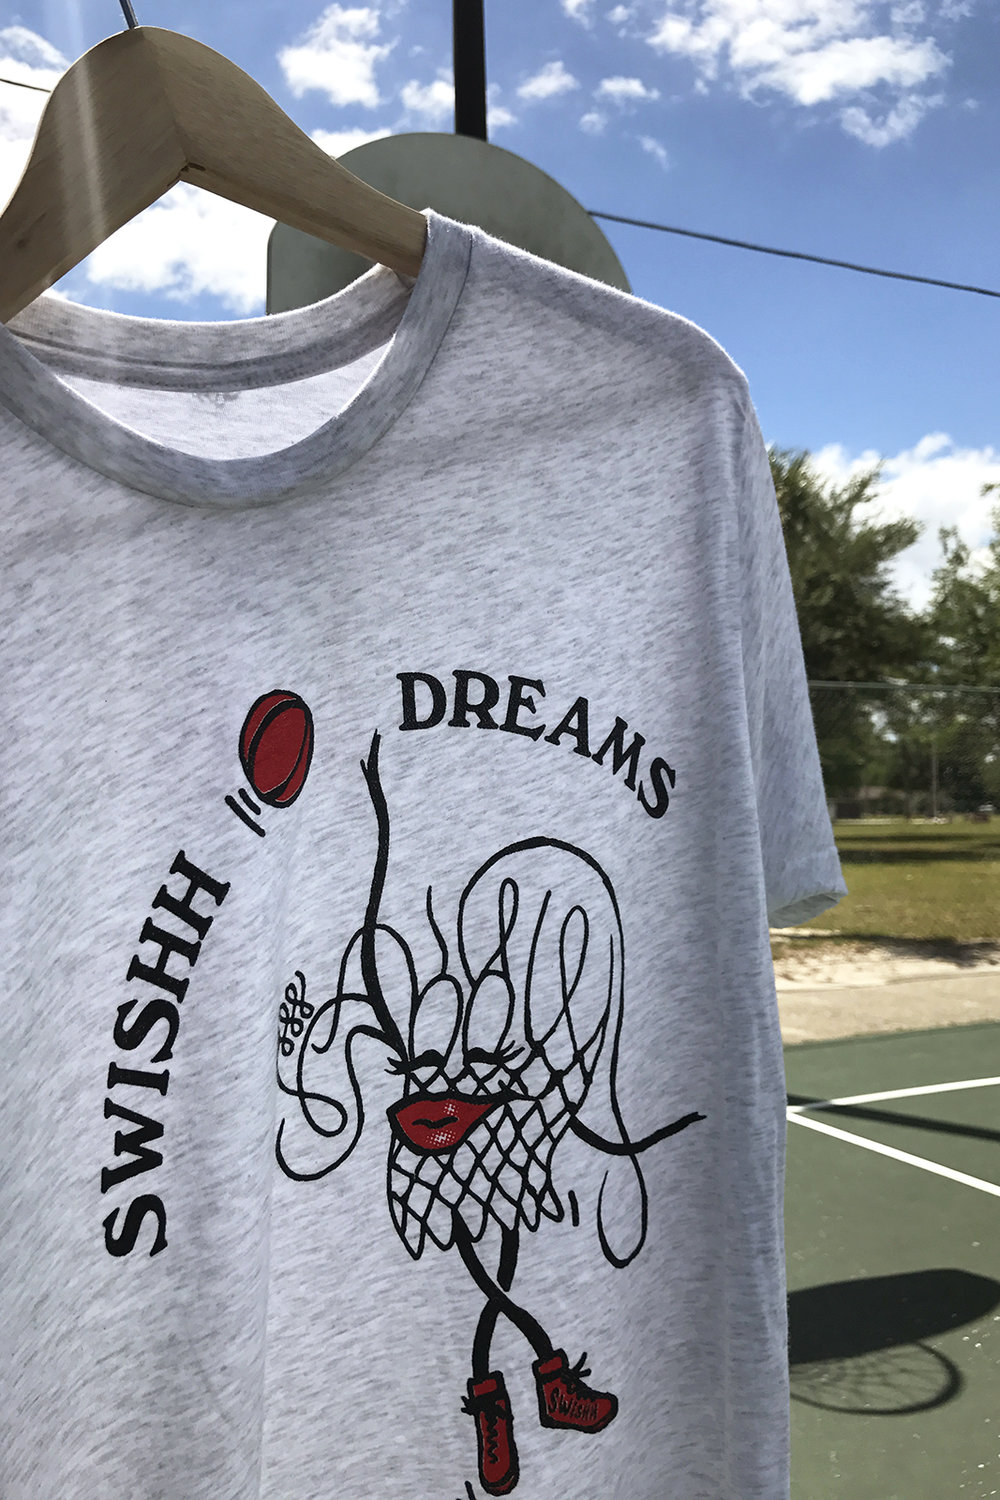 MS. SWISHH T-SHIRT